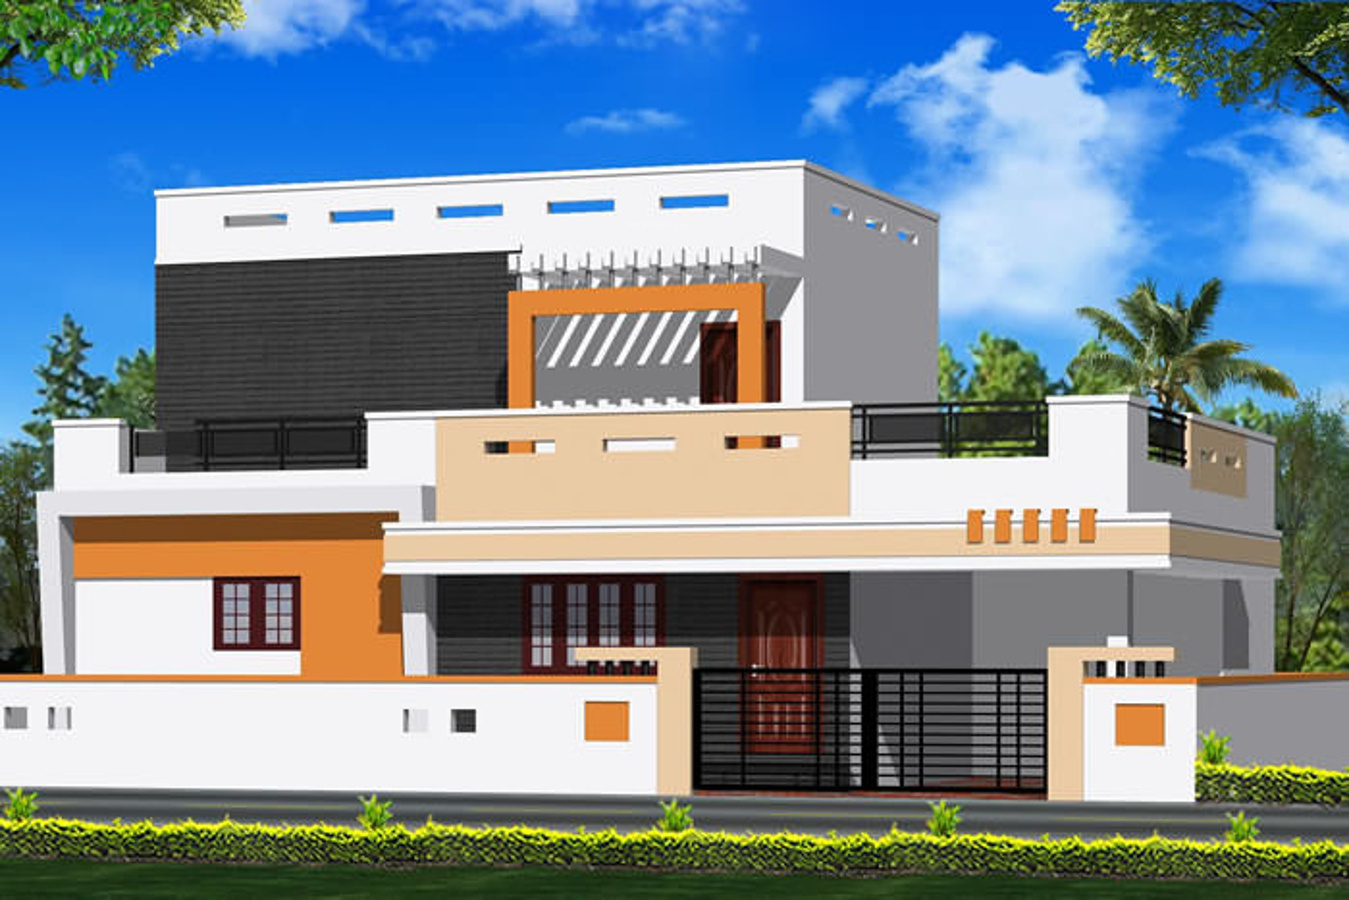 2020 Sq Ft 3 Bhk 3t Villa For Sale In Jrd Realtorss Smart Homes Kovai Pudur Coimbatore